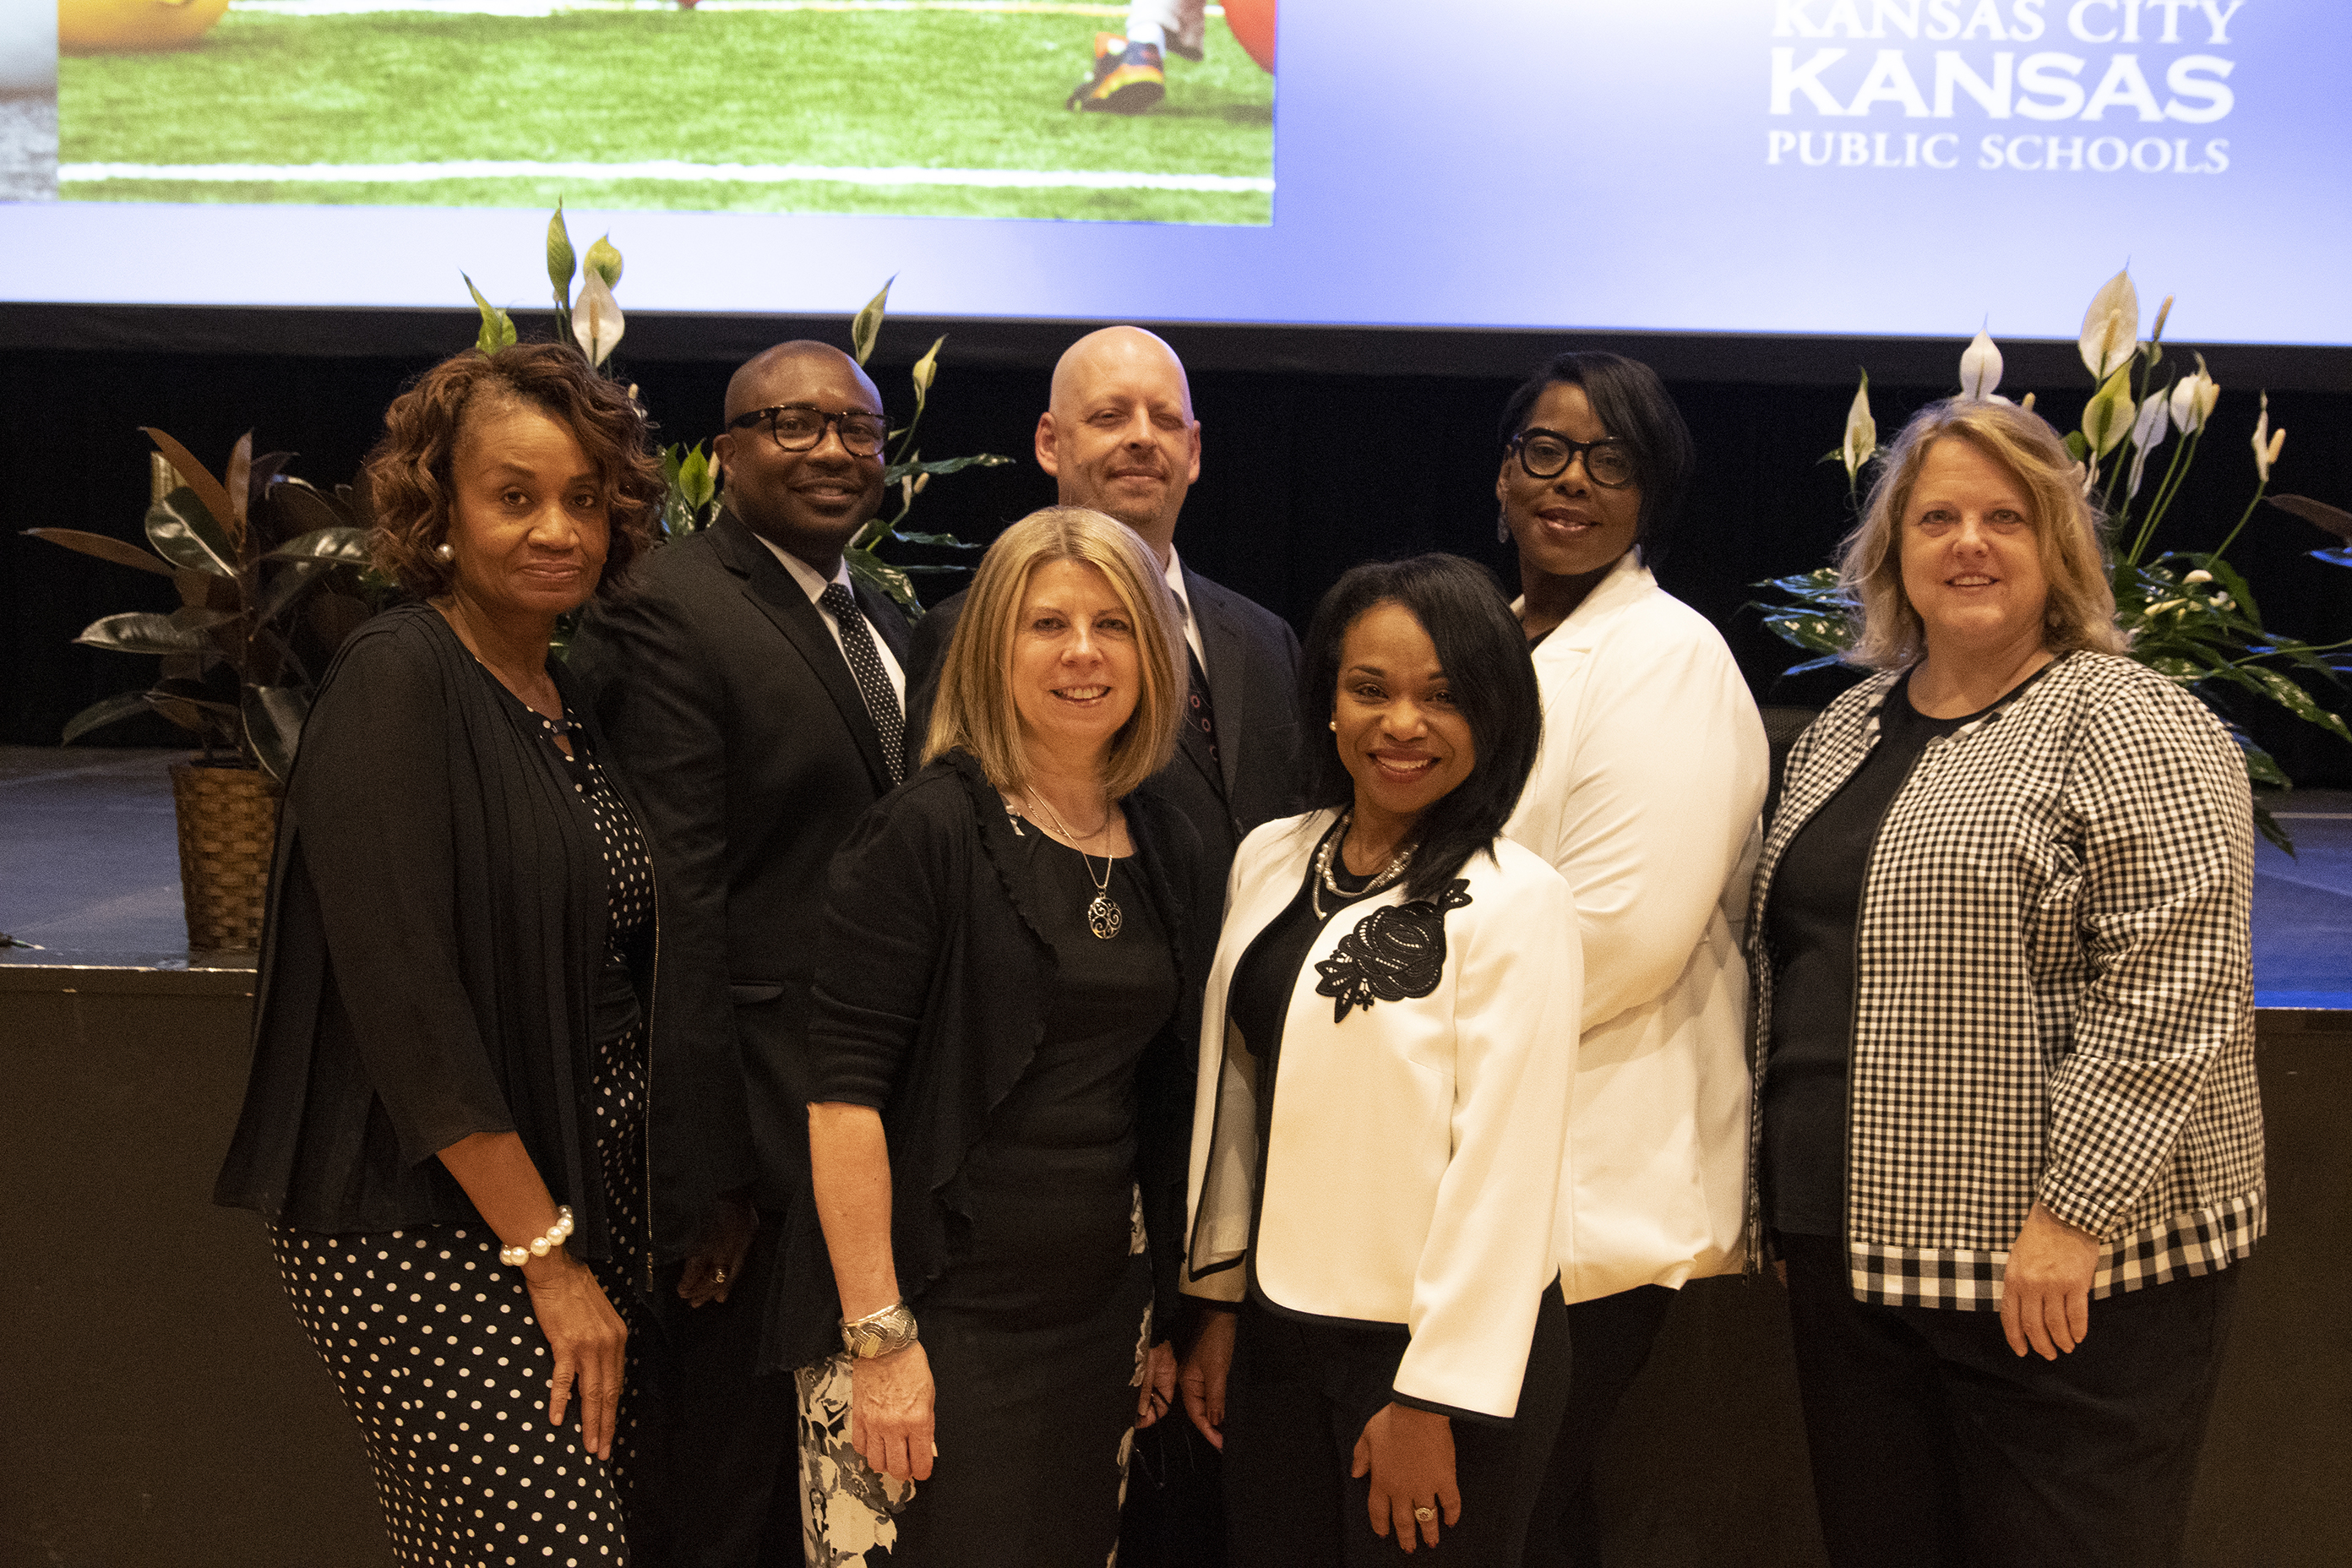 Convocation 2019 – Kansas City, Kansas Public Schools